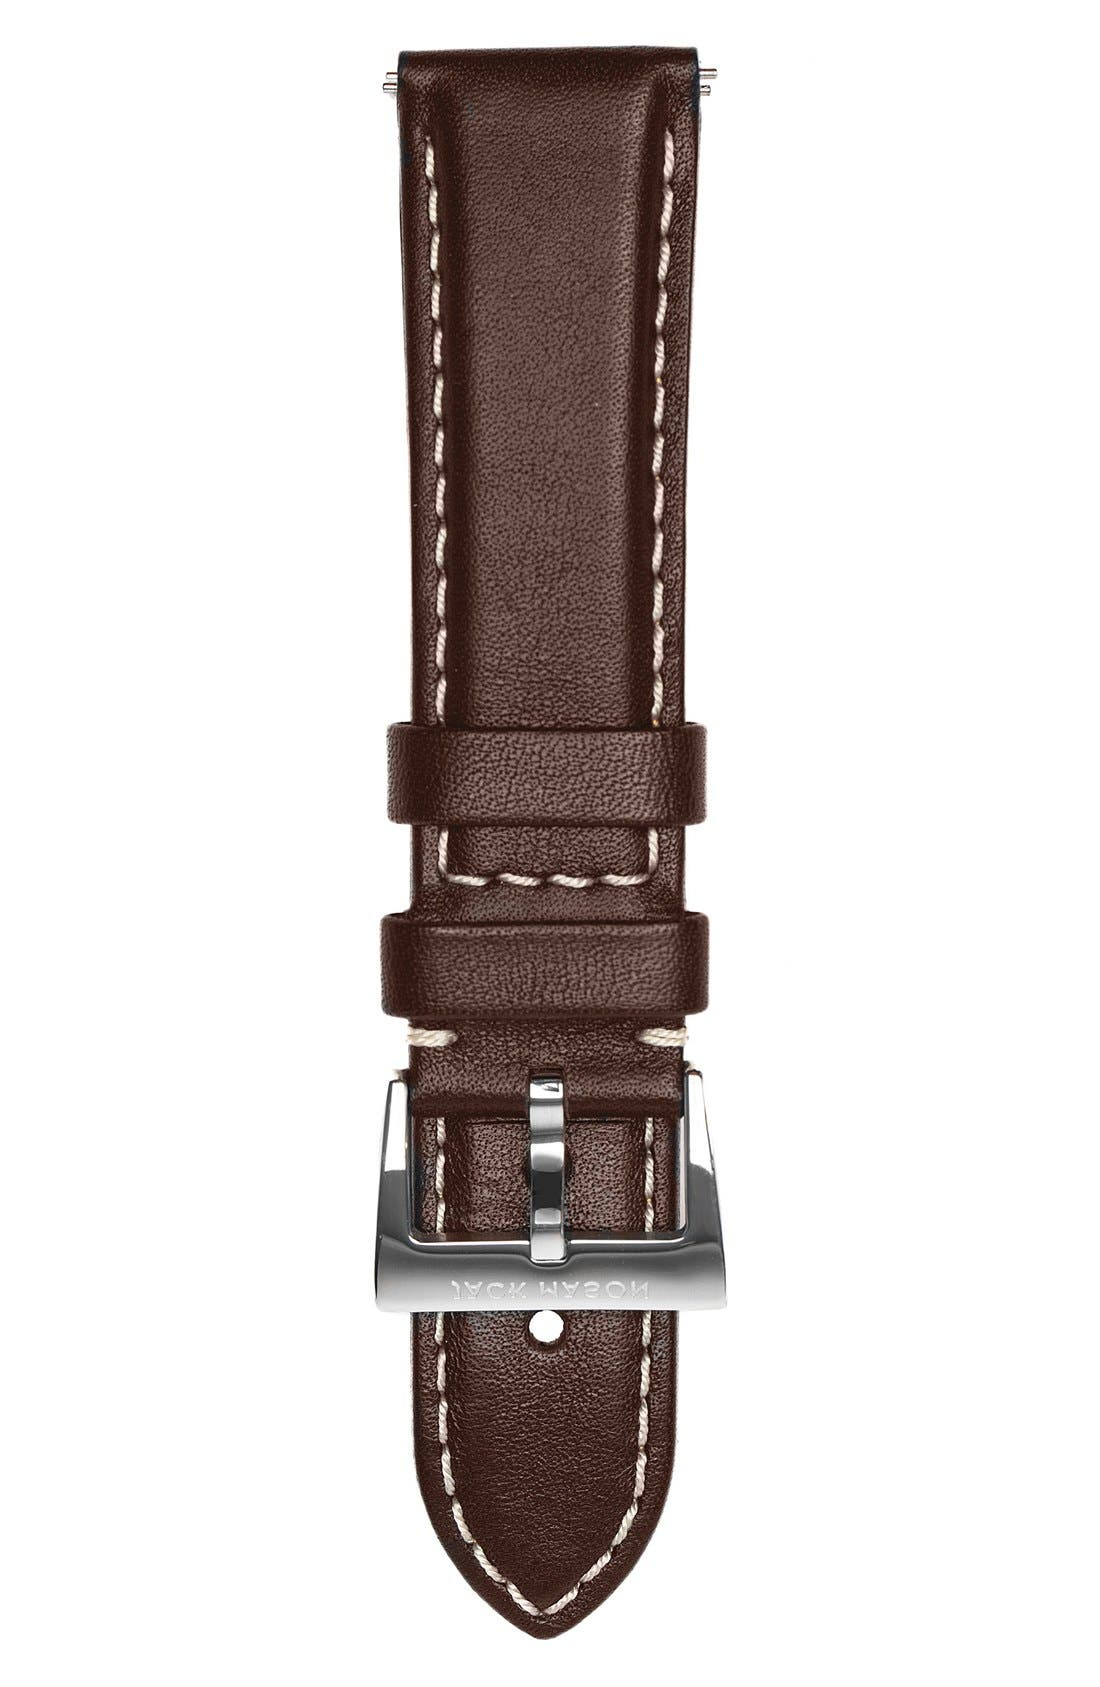 Alternate Image 1 Selected - Jack Mason Leather Watch Strap, 22mm